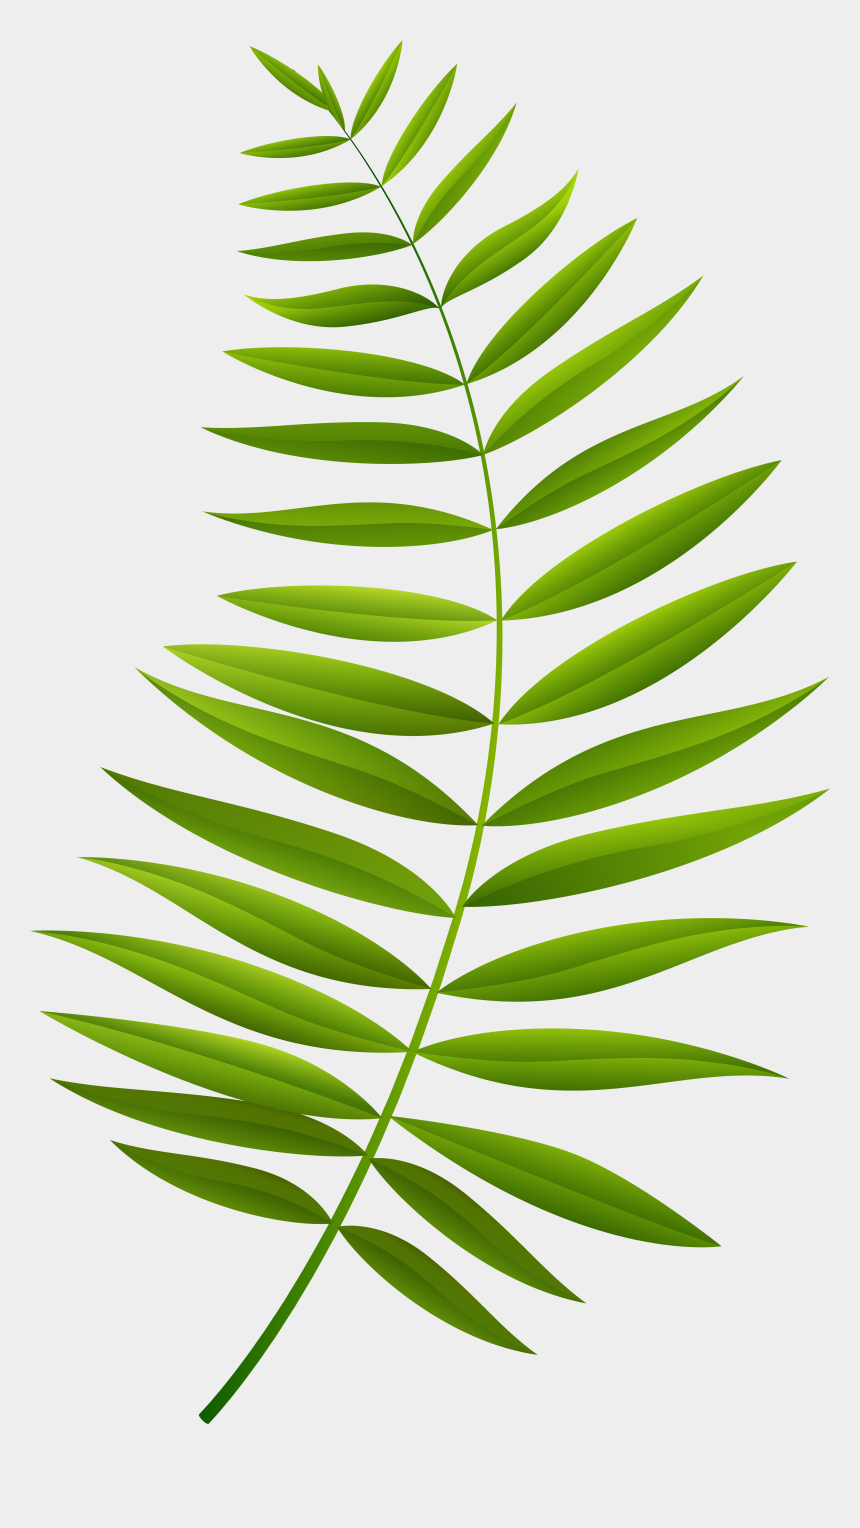 olive branches clipart, Cartoons - Palm Branch Transparent Clip Art Imageu200b Gallery - Palm Branch Png